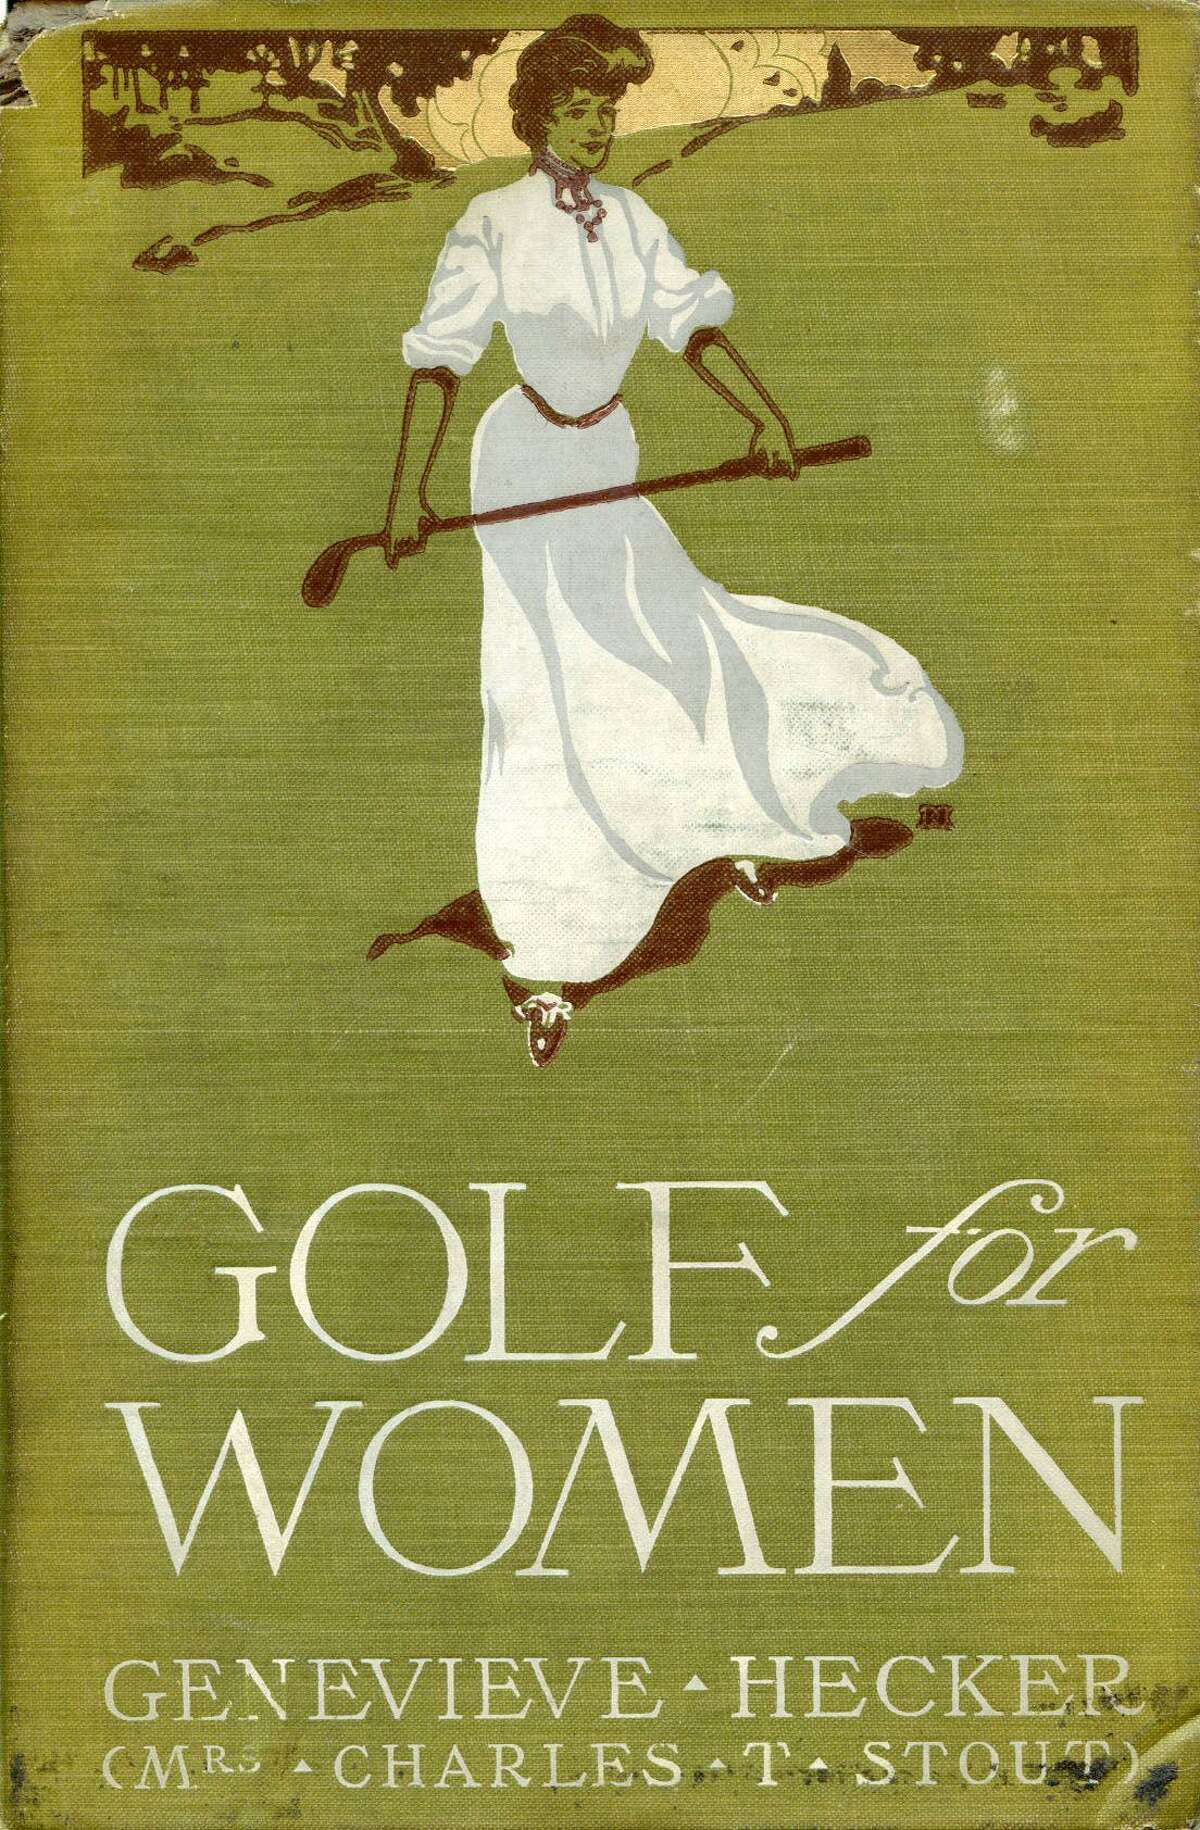 Book cover of Golf For Women, written by Darien native Genevieve Hecker, who will be inducted into the Connecticut Golf Hall of Fame.